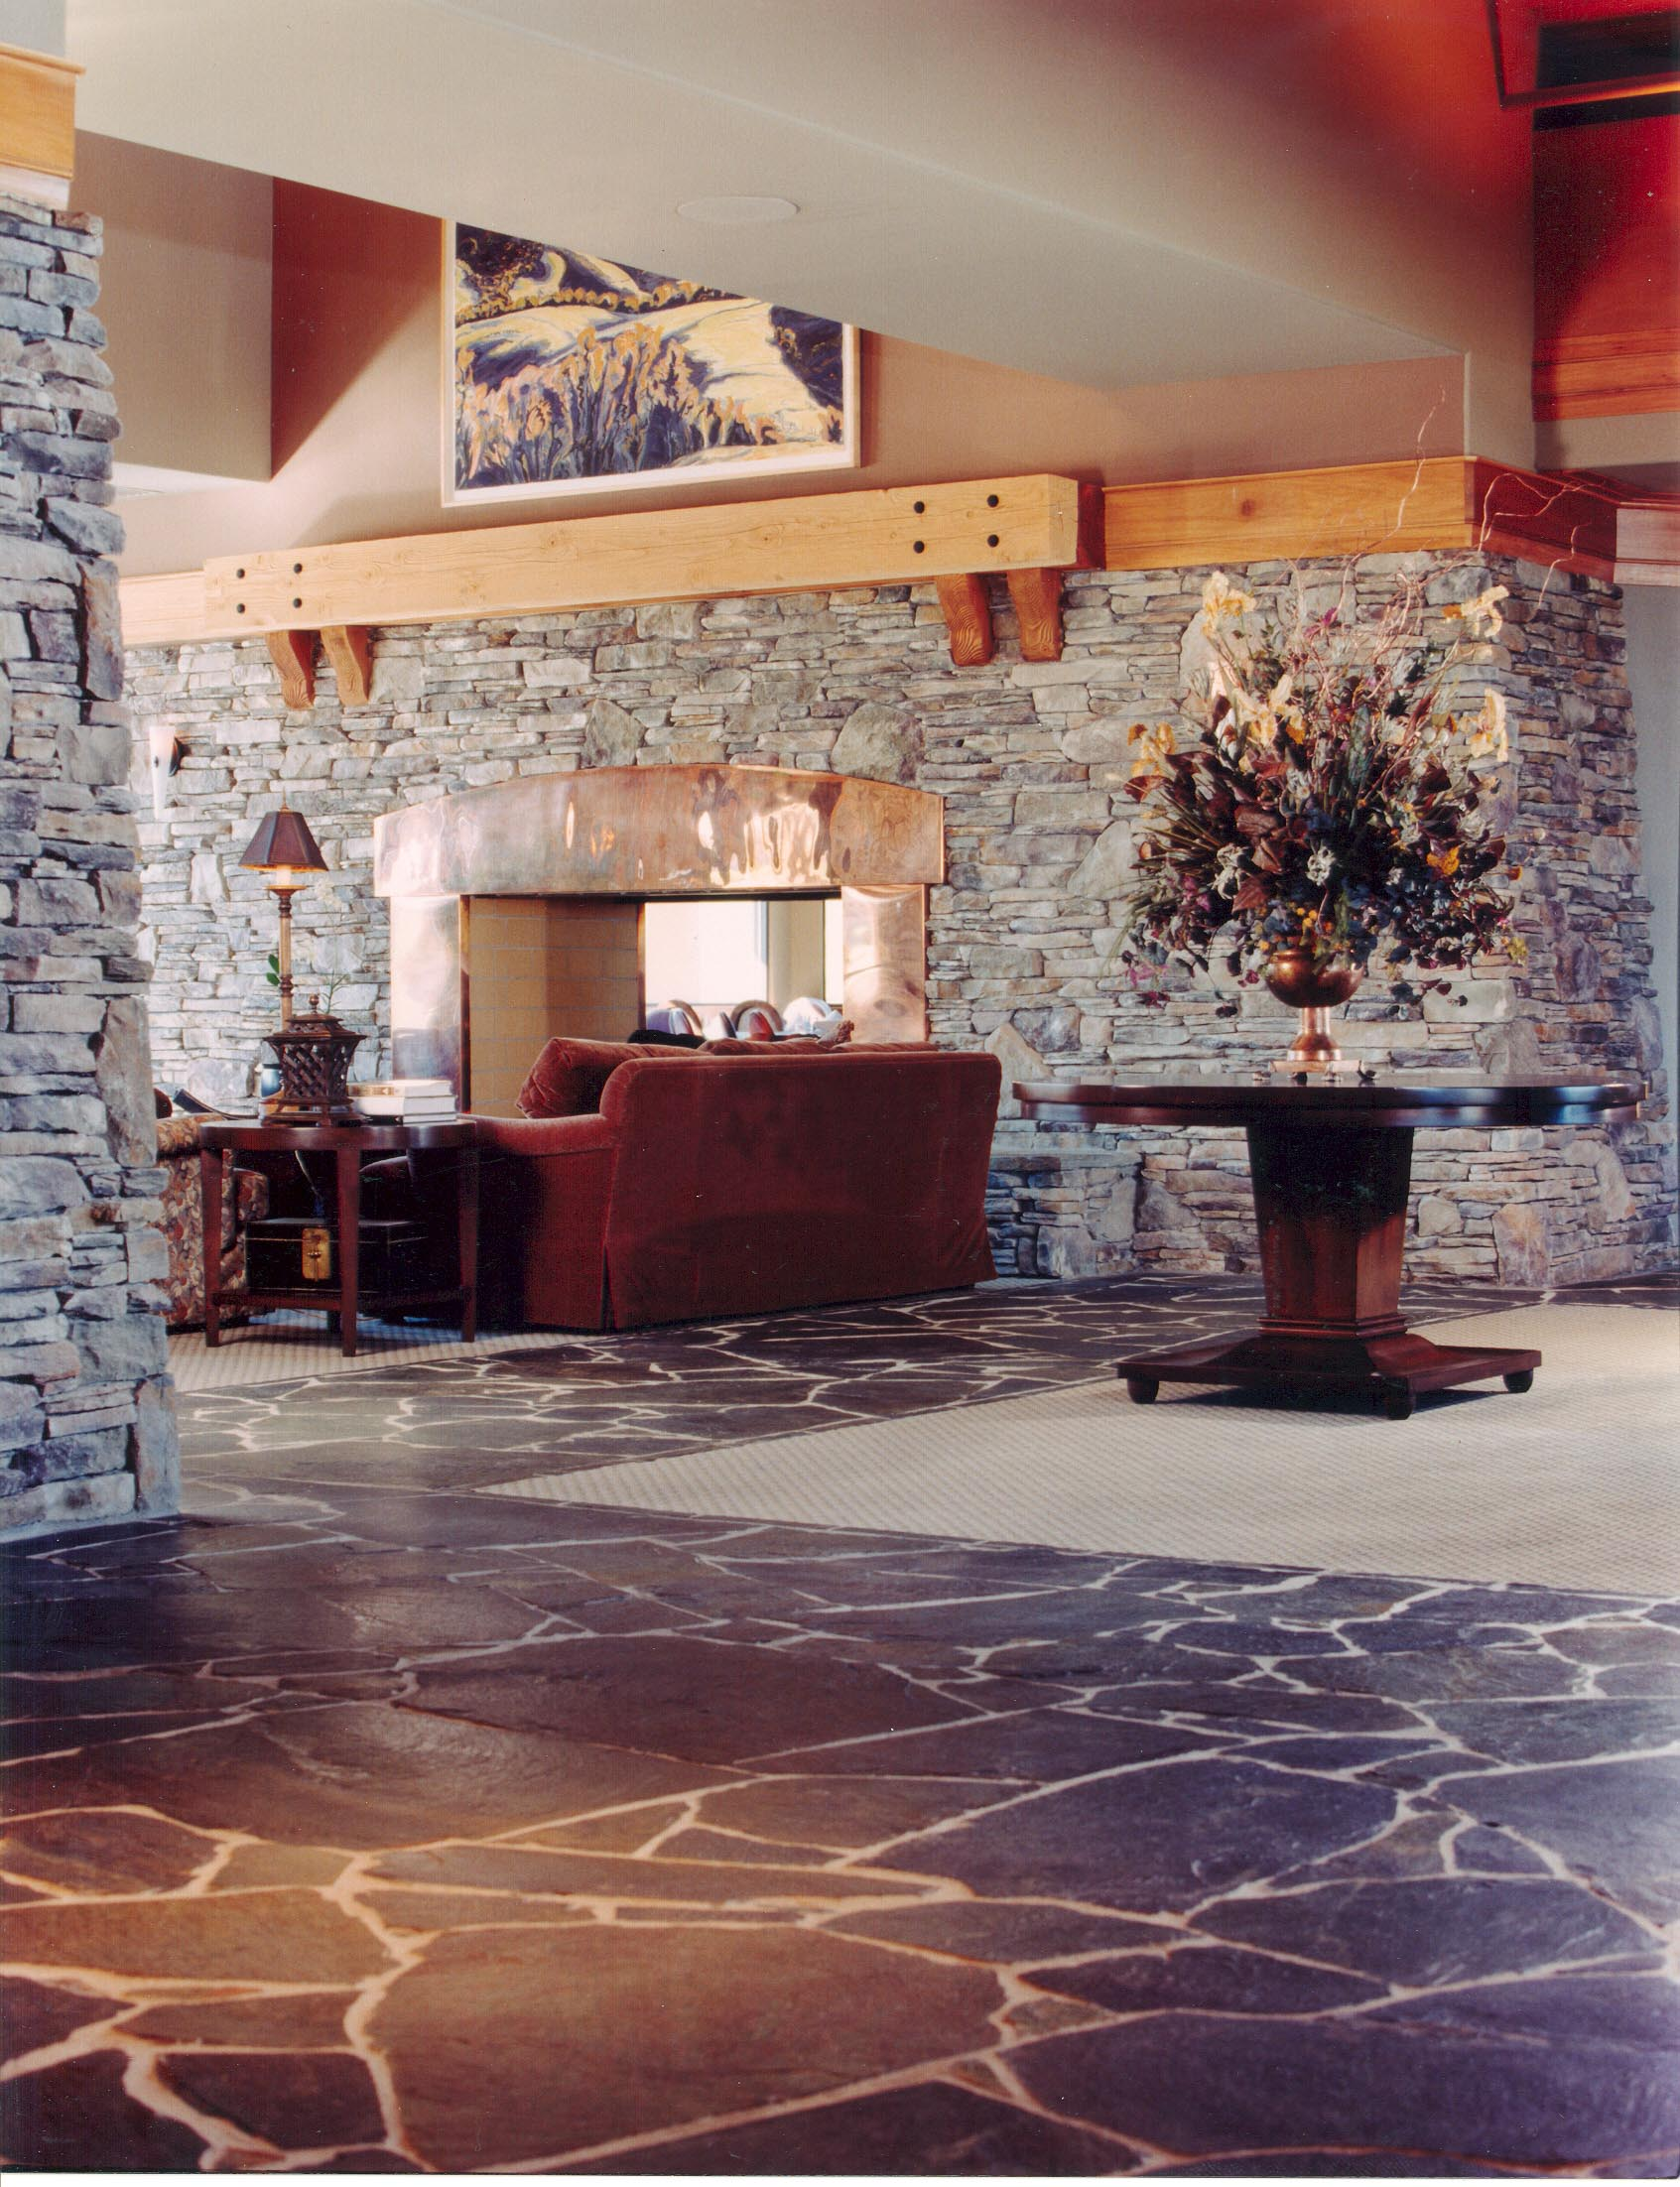 Arrowcreek club lobby.jpg